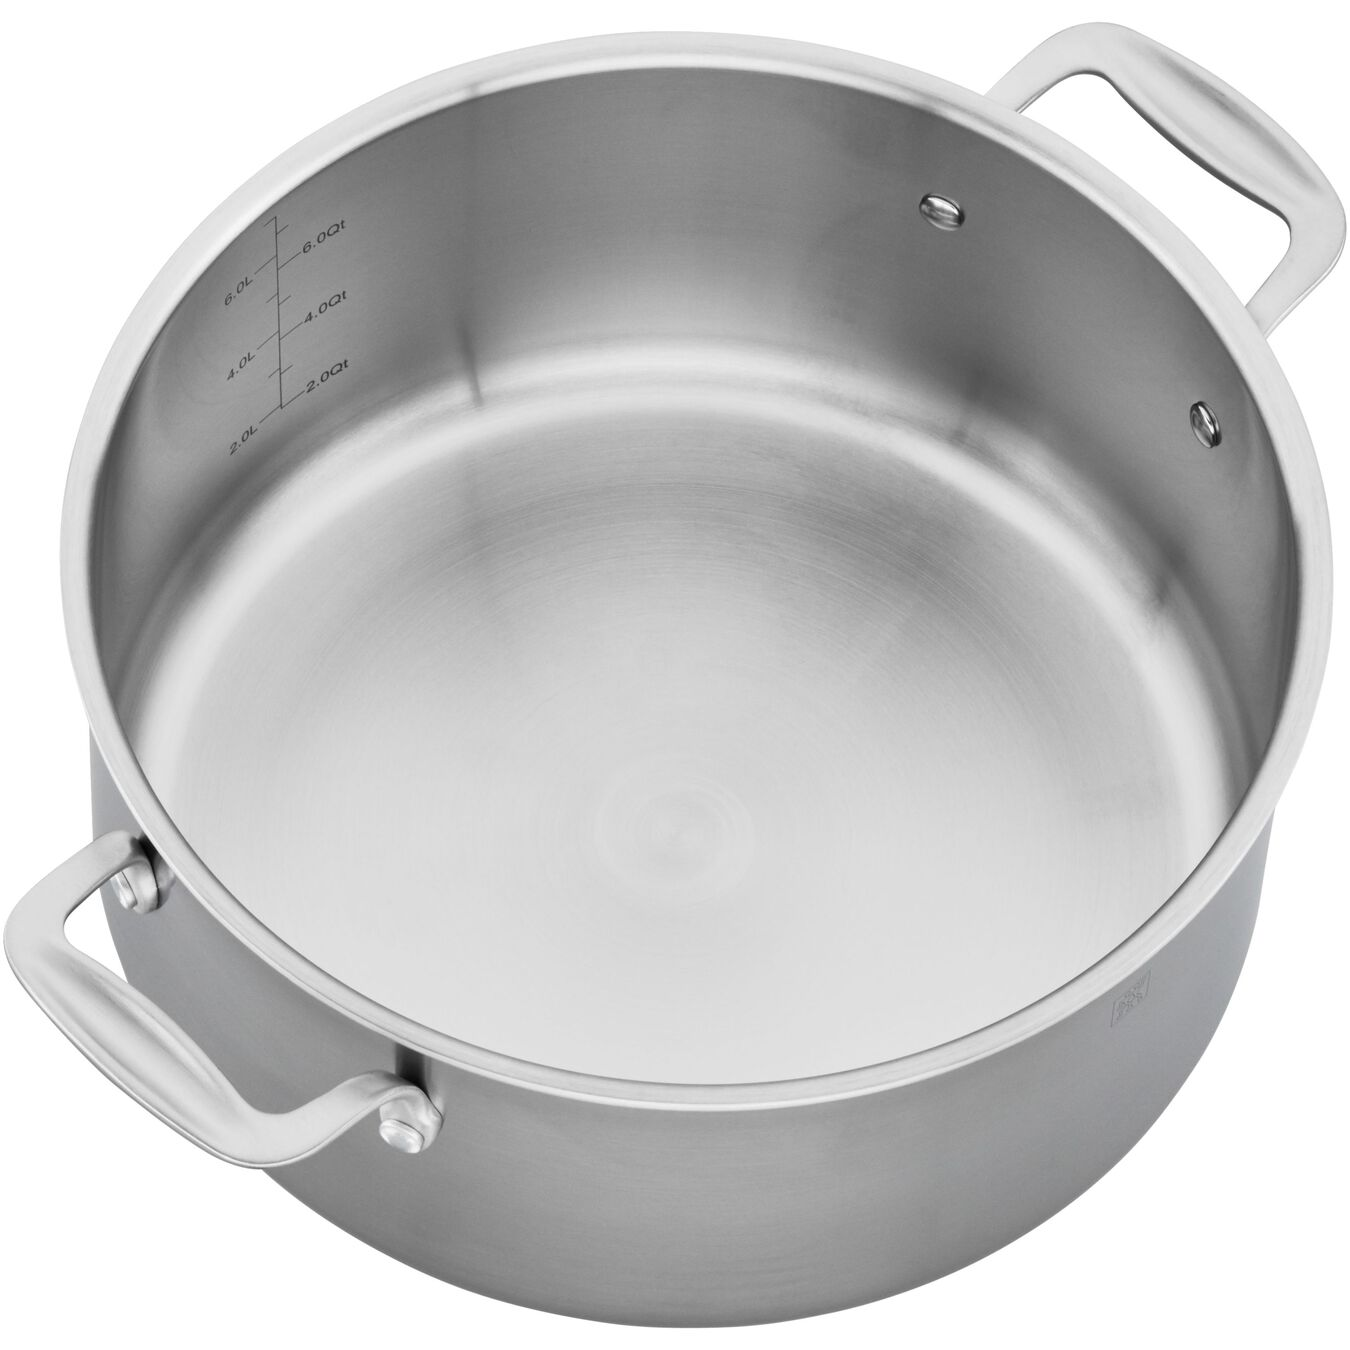 8 qt, Stainless Steel Dutch Oven,,large 3